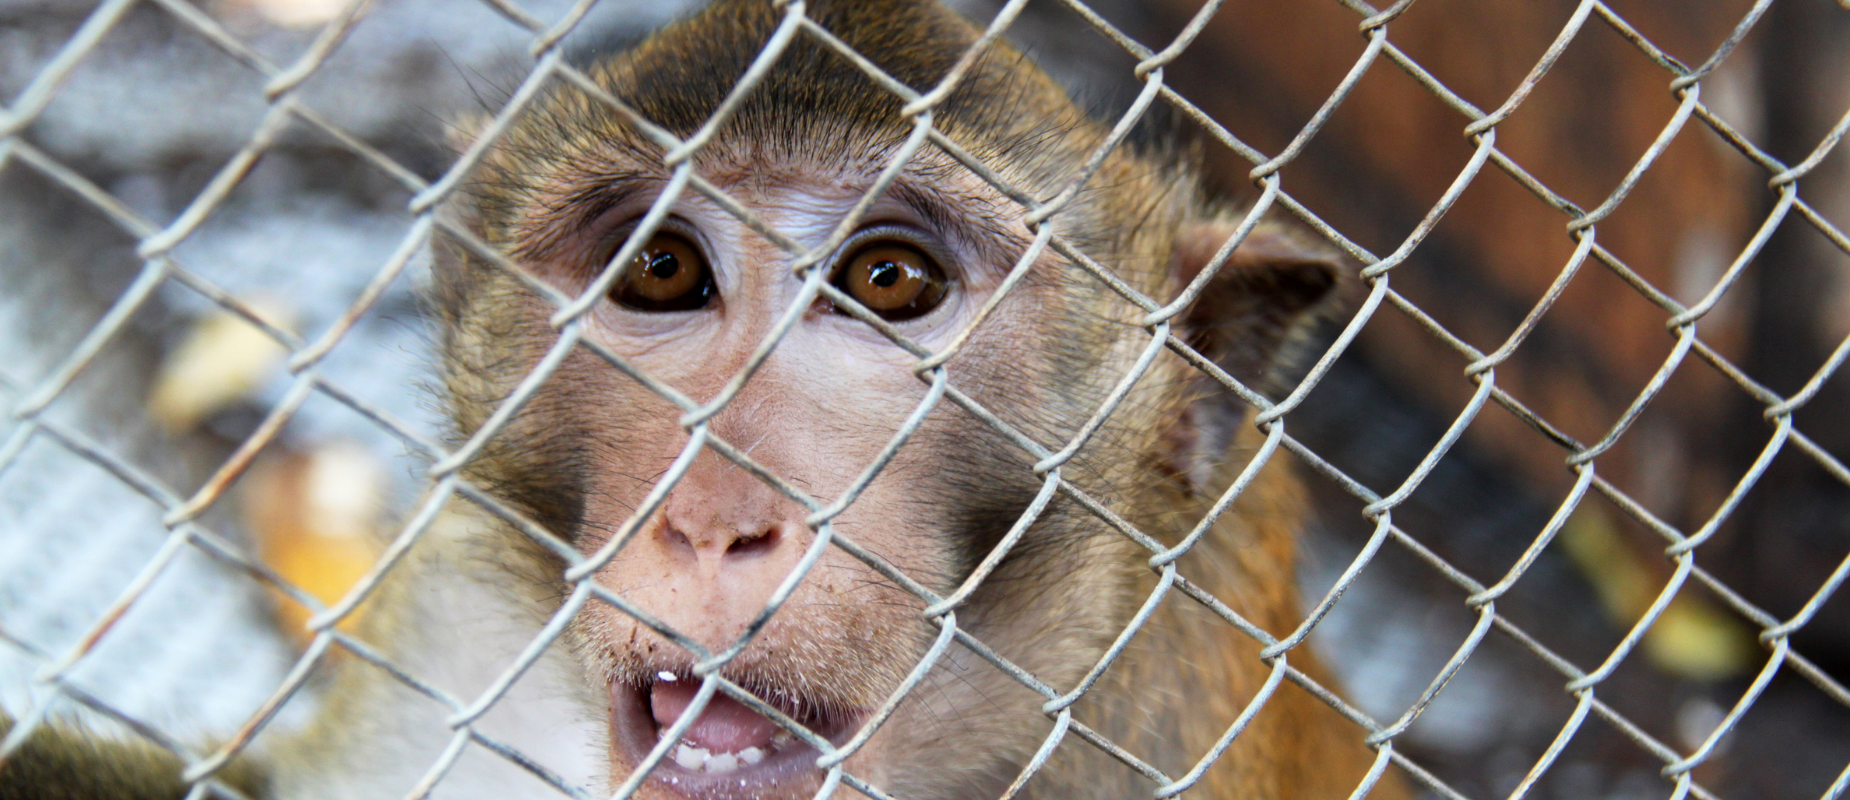 A macaque, open-mouthed, looks through cage wiring